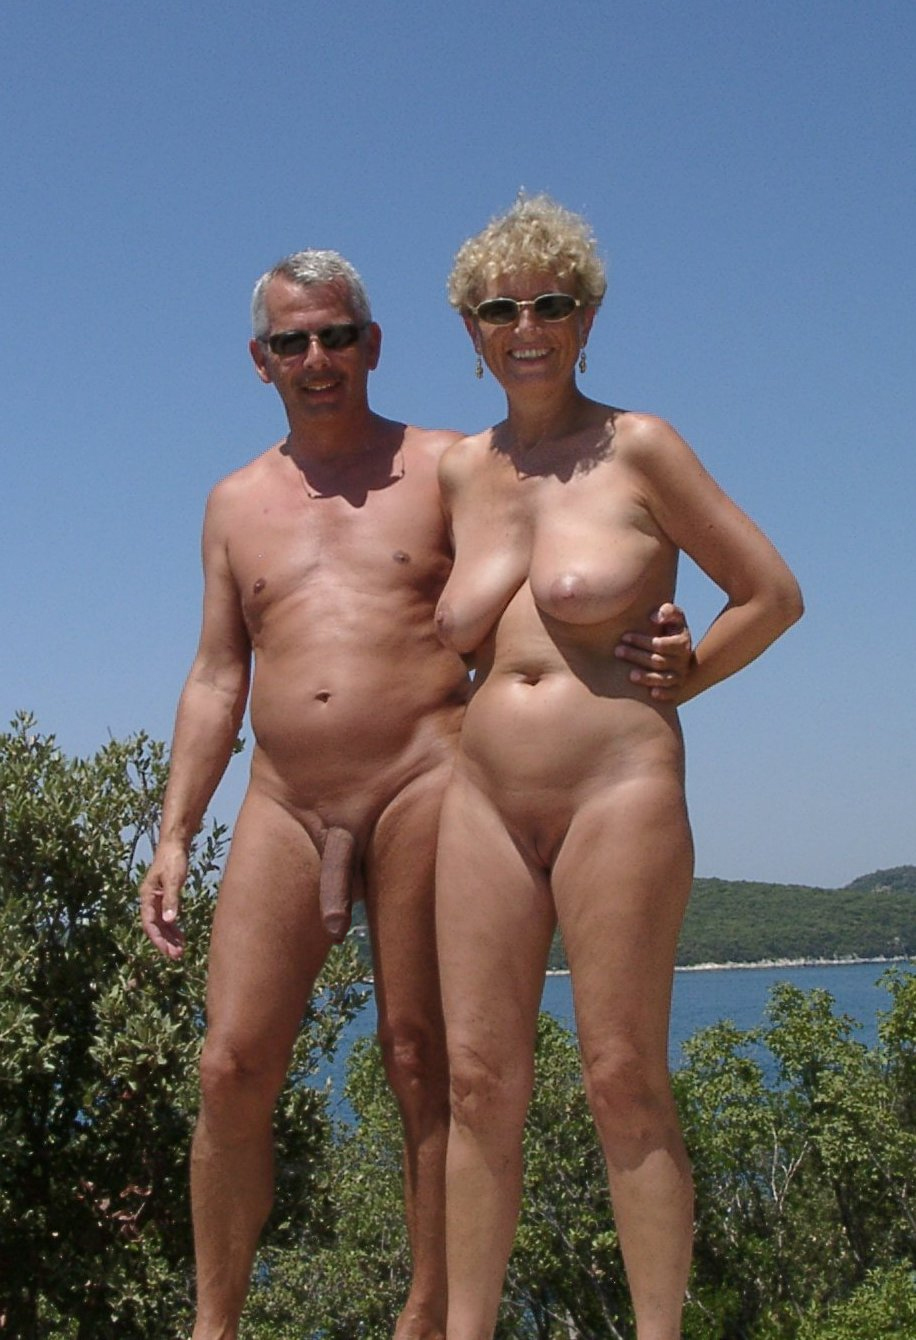 mature nude couples Shared by Furciacachonda - Nudist Couples